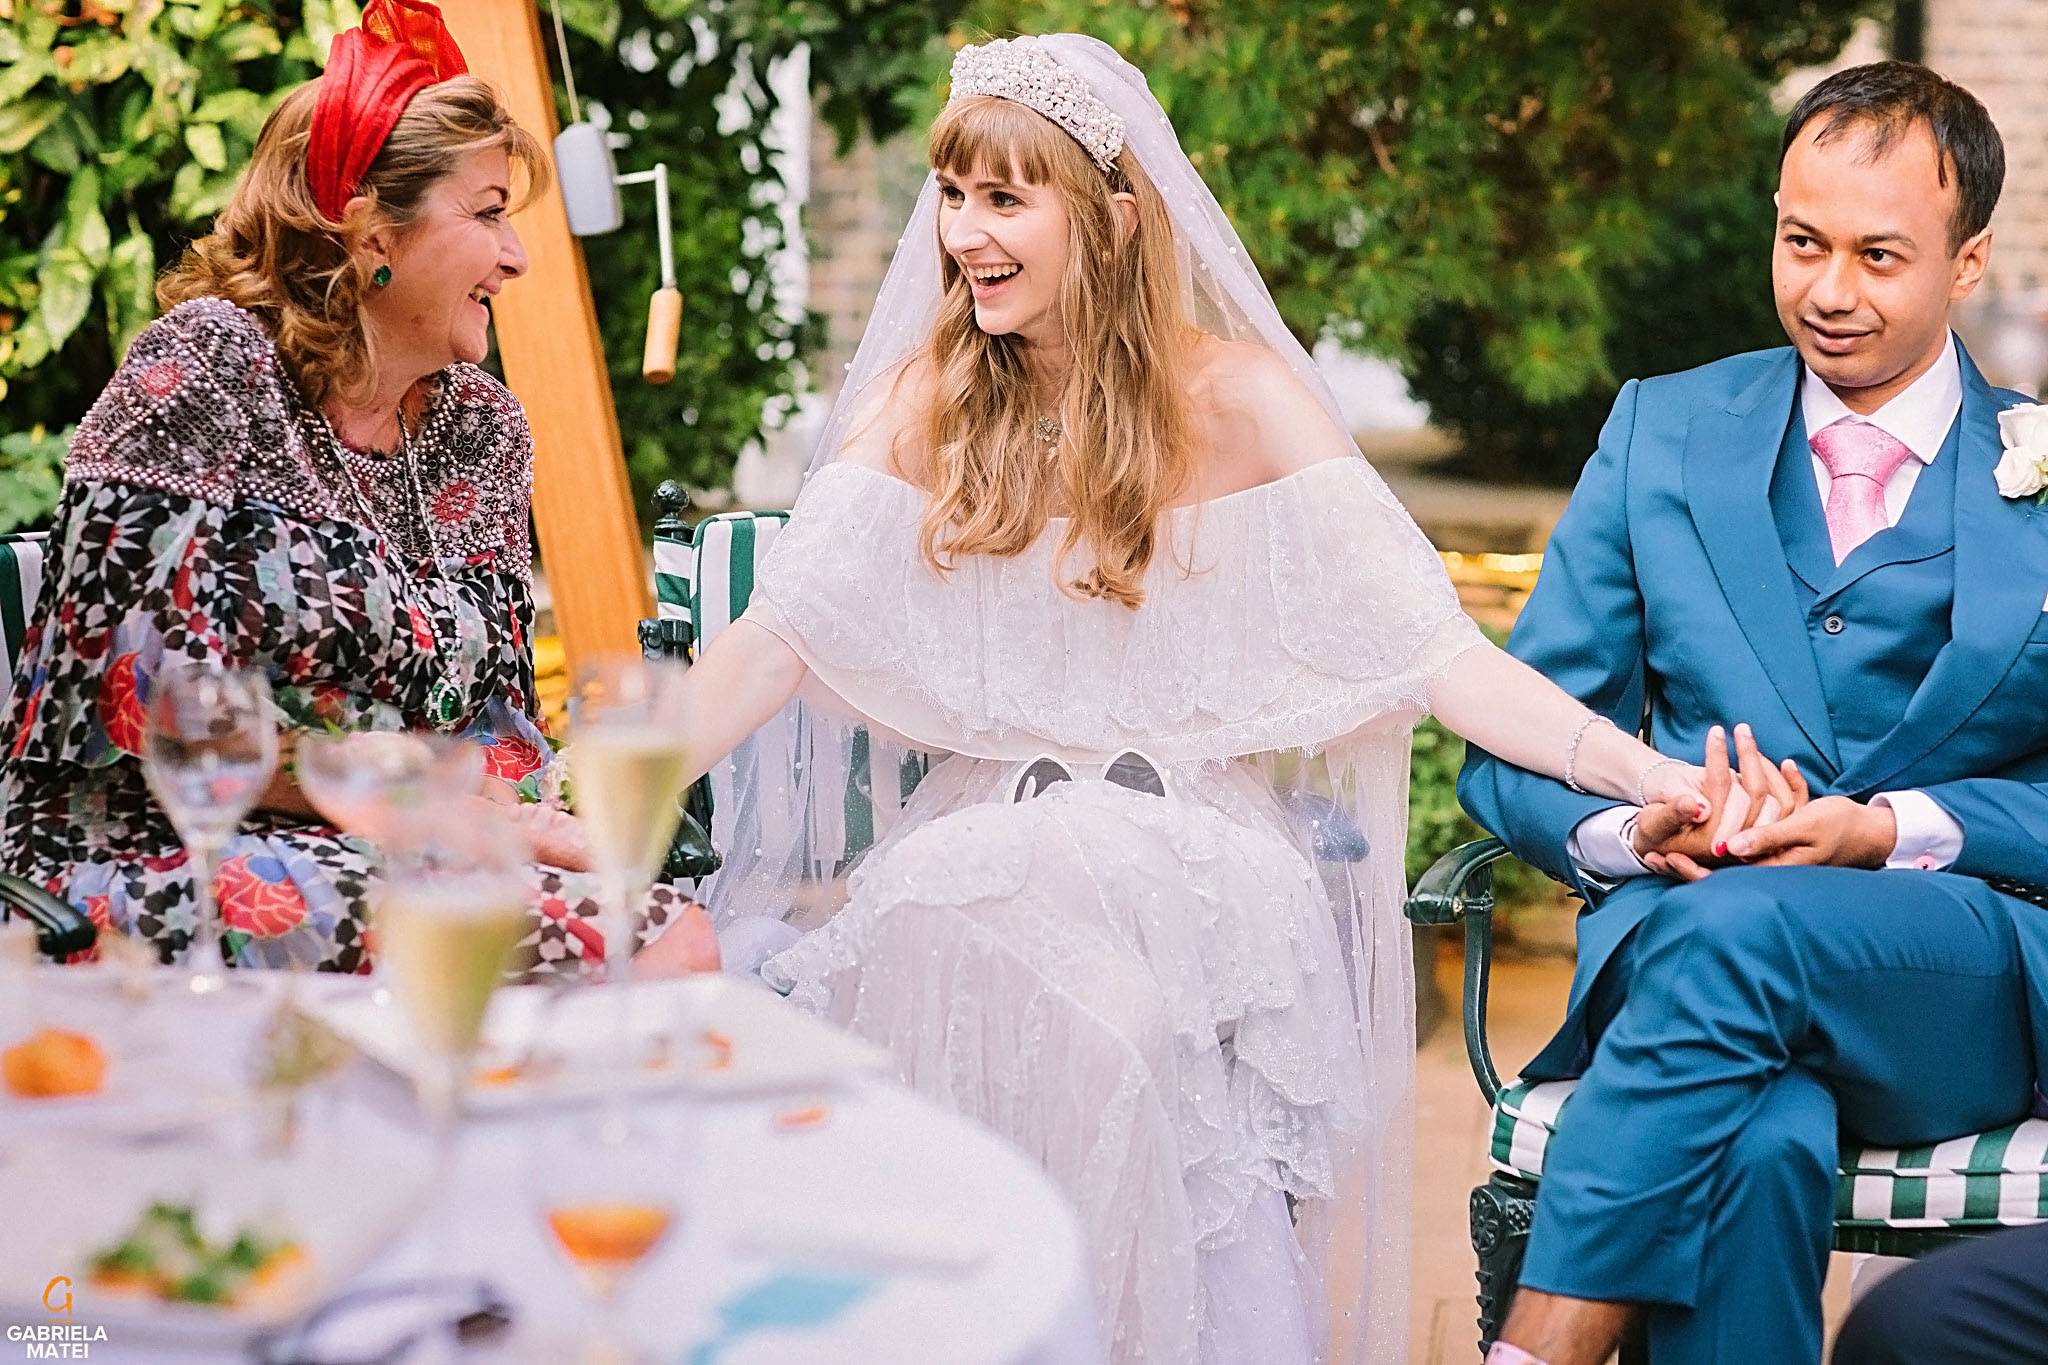 Bride laughing with wedding guests in outdoor garden, The Ritz